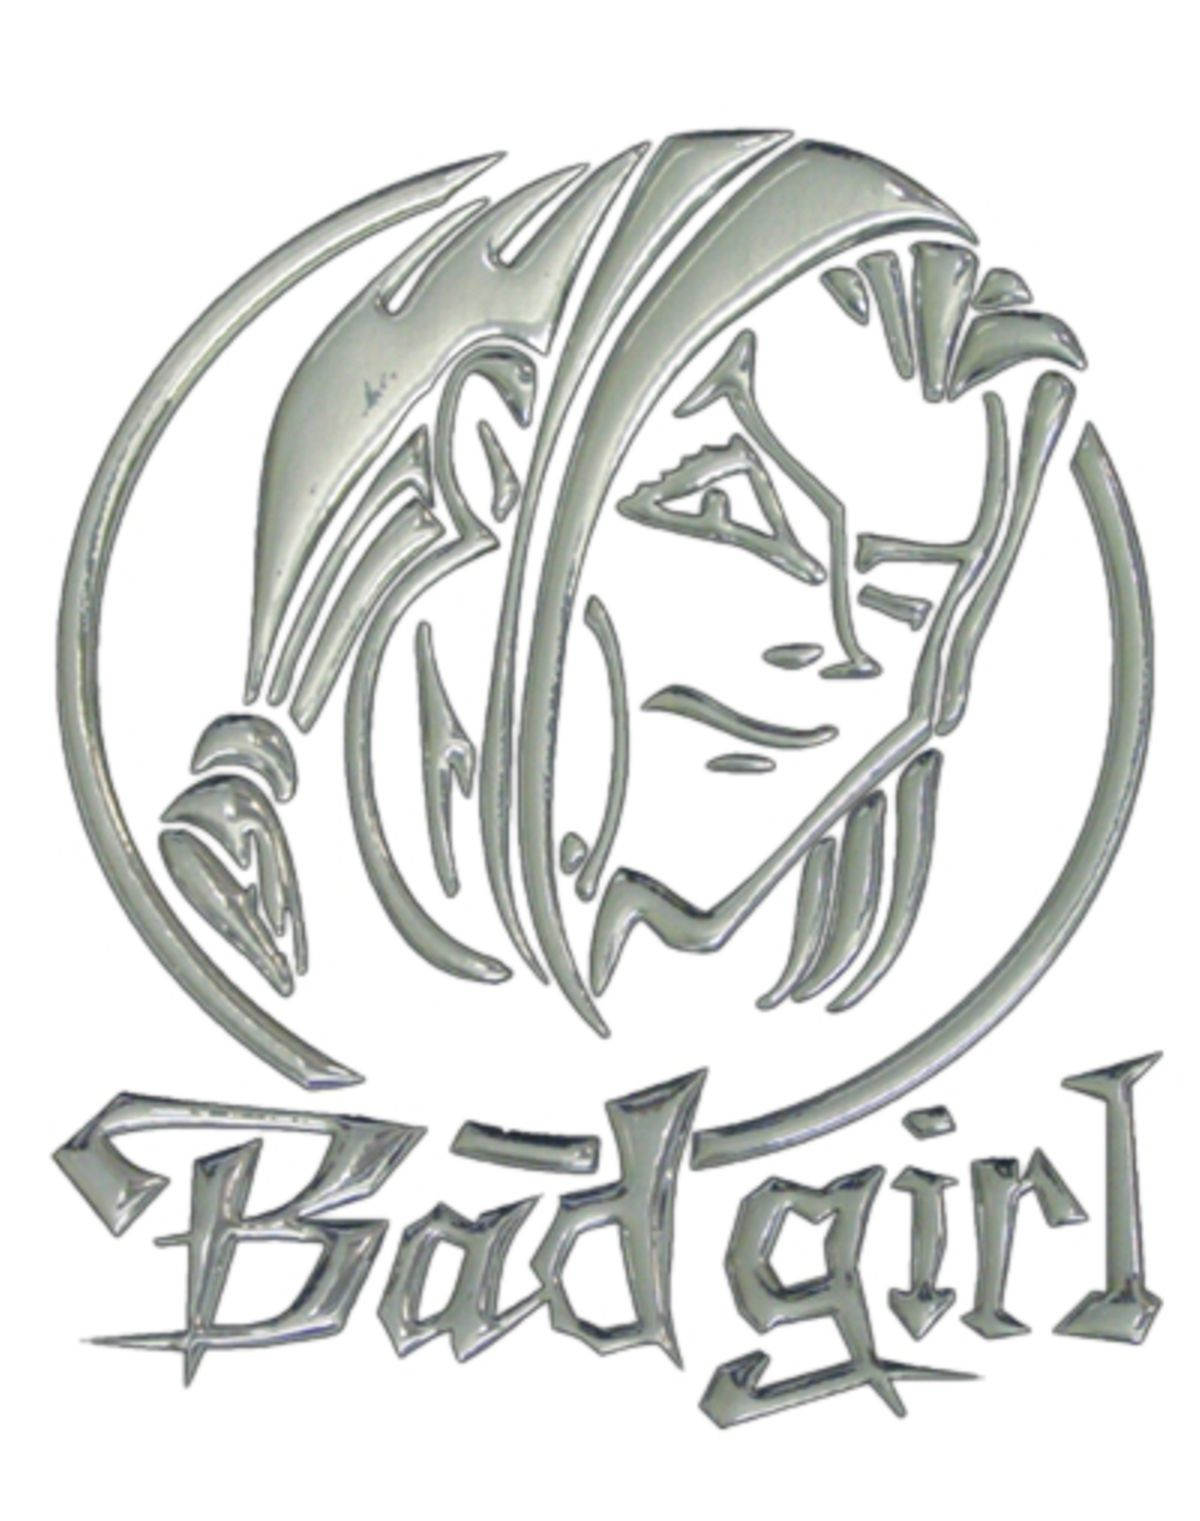 3D-Chrome-Sticker bad girl 200 x 165 mm – Bild 1